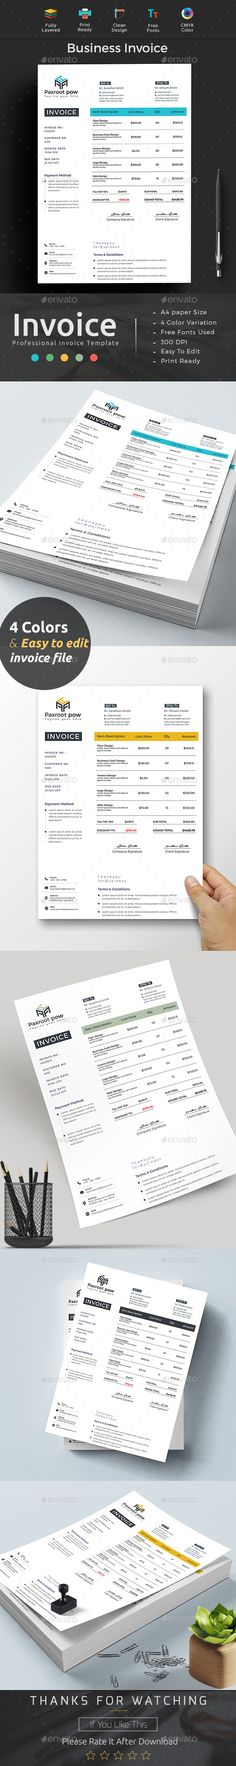 Corporate Invoice Stationery and Proposals - how to print invoices